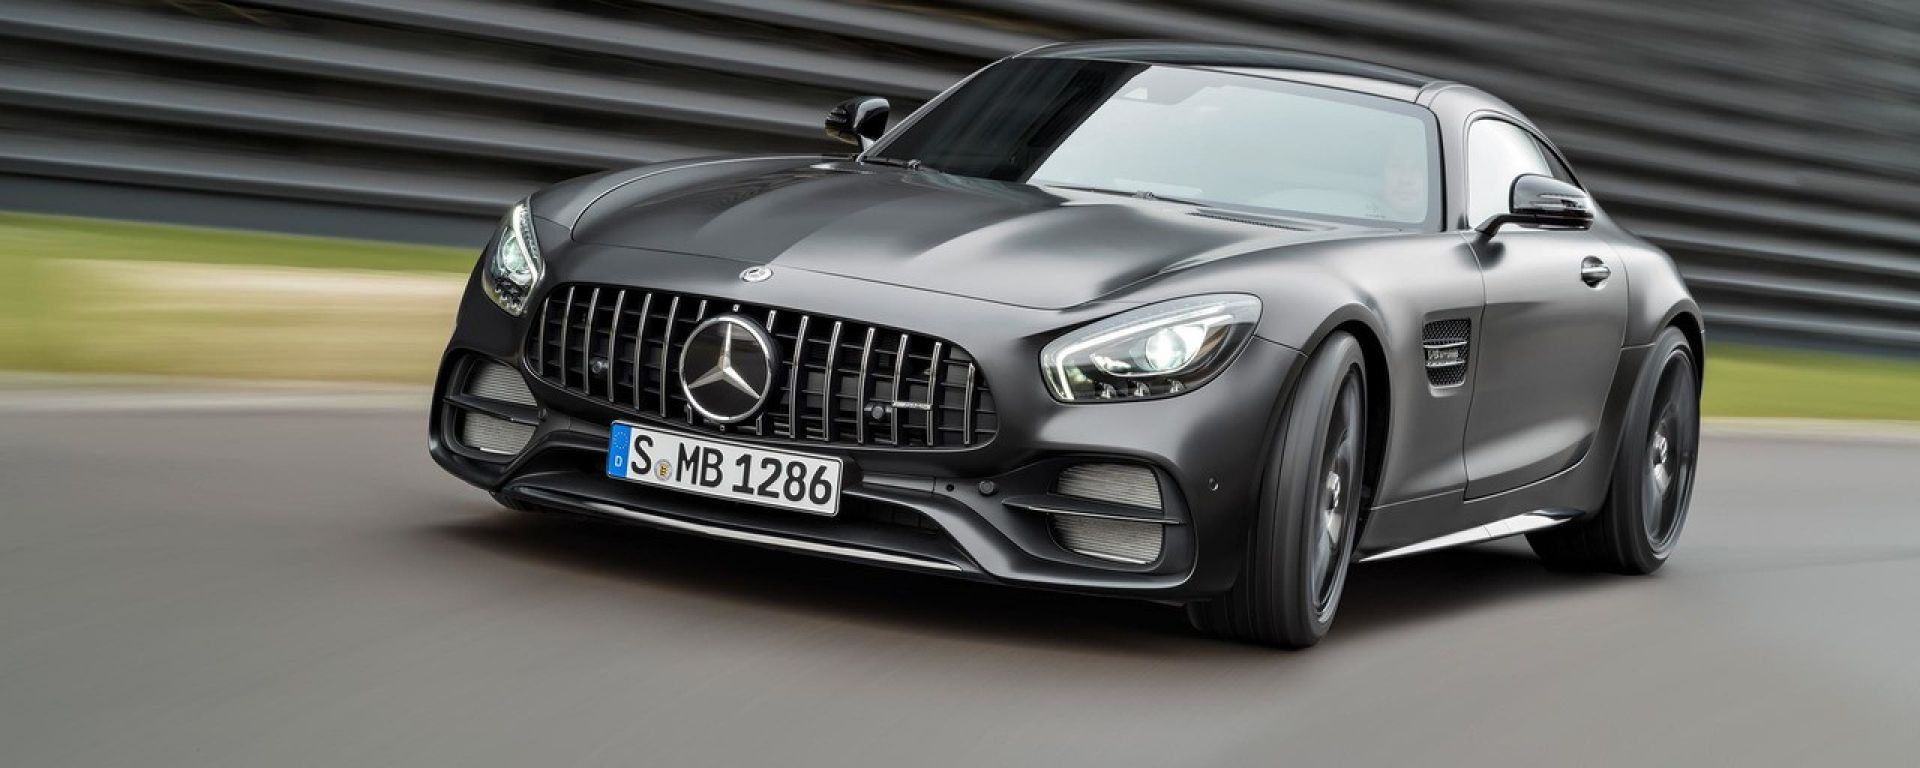 Mercedes AMG GT MY 2017: a Detroit arriva il facelift